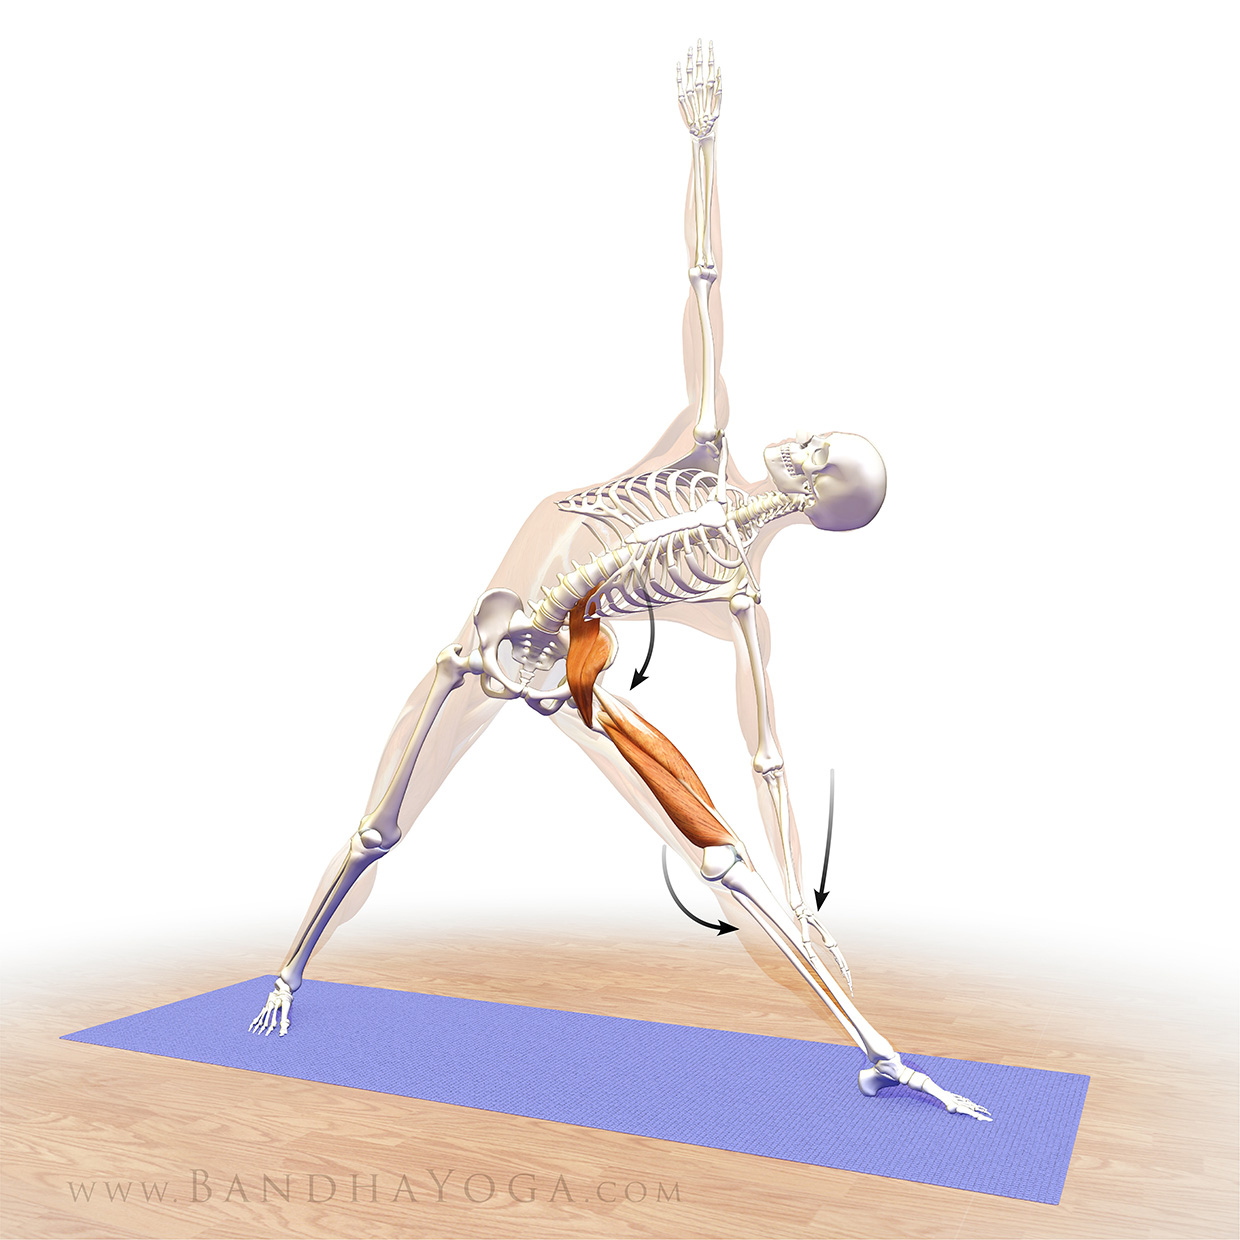 An anatomical illustration of co-activating the psoas and quads in Triangle Pose (Trikonasana) in yoga